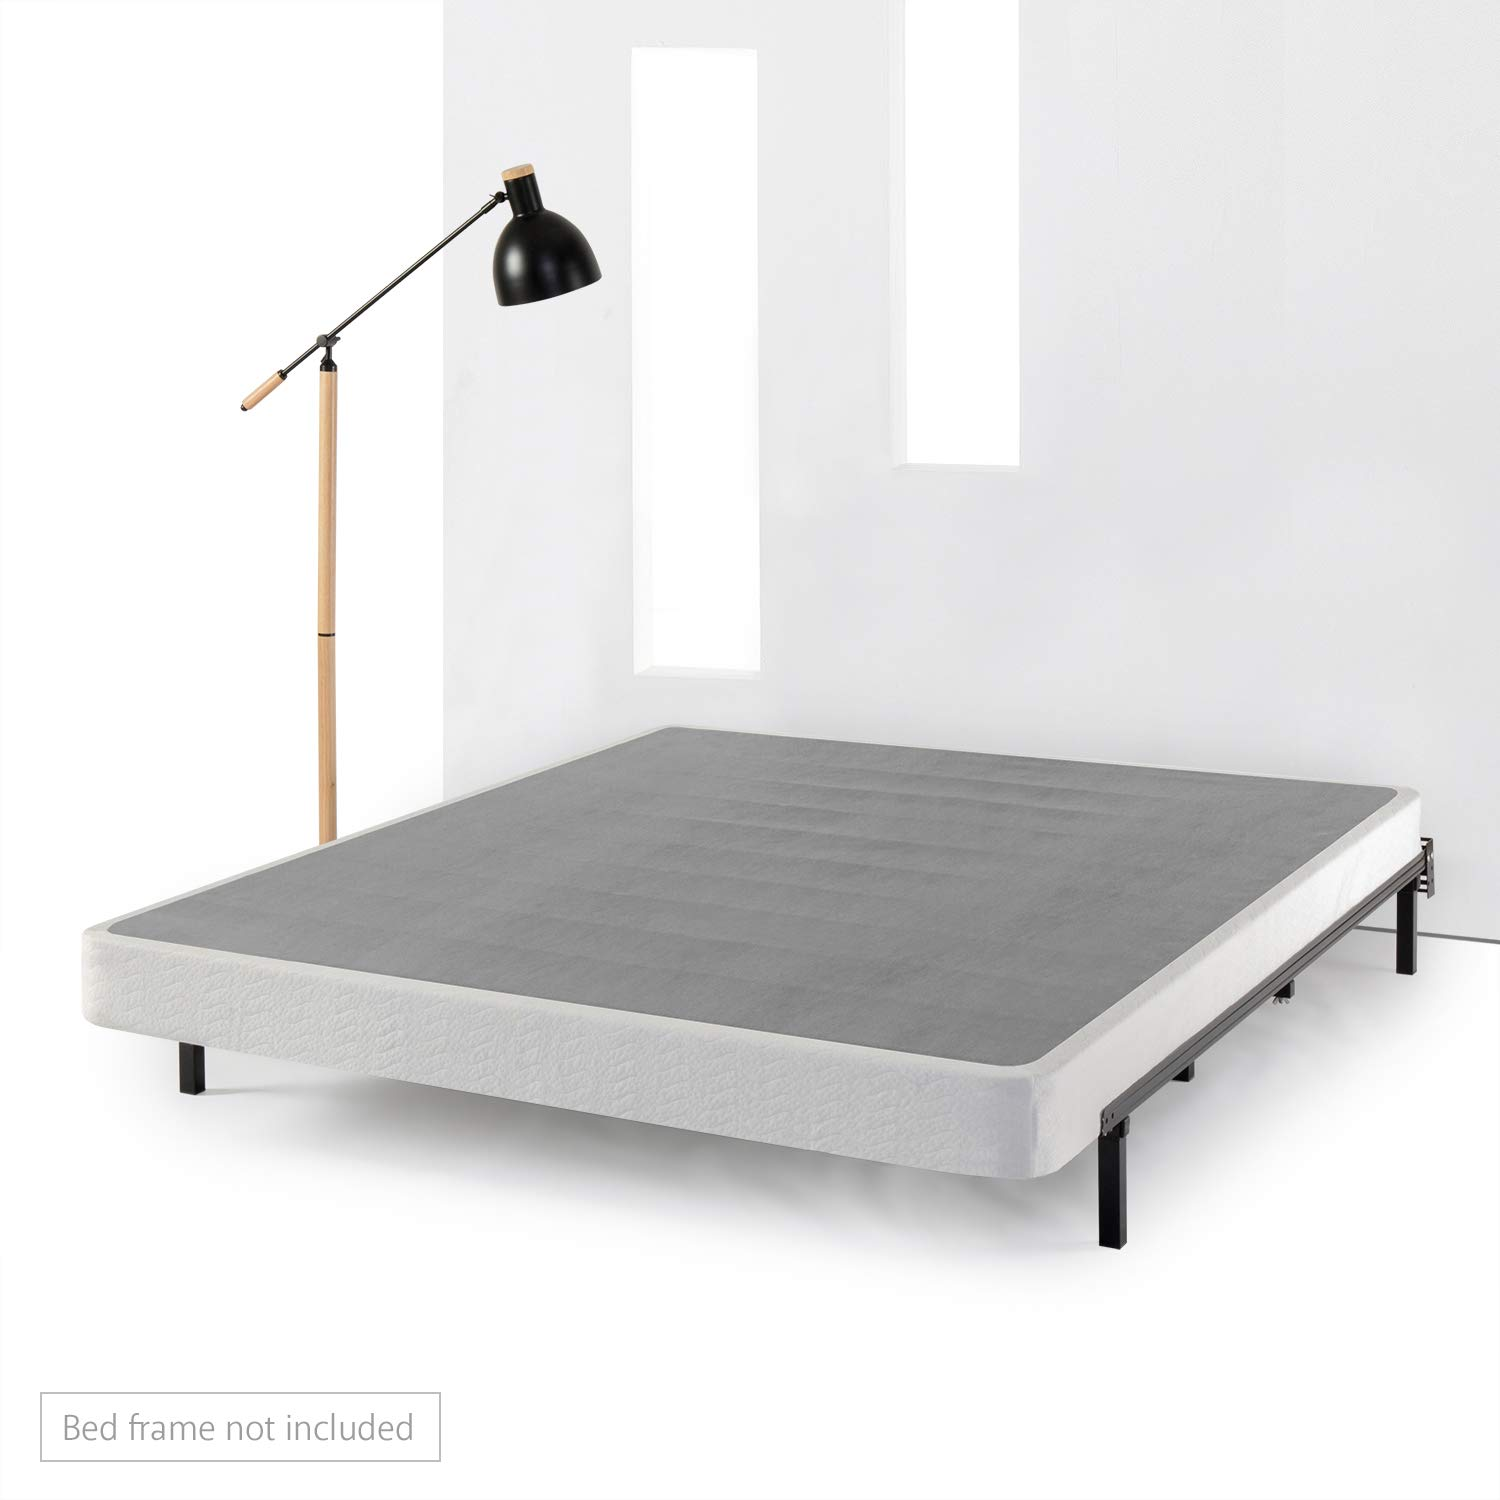 Best Price Mattress Heavy Duty Steel Low Profile Box Spring/Mattress Foundation/Easy Assembly - 5 Inch, King, Gray/White